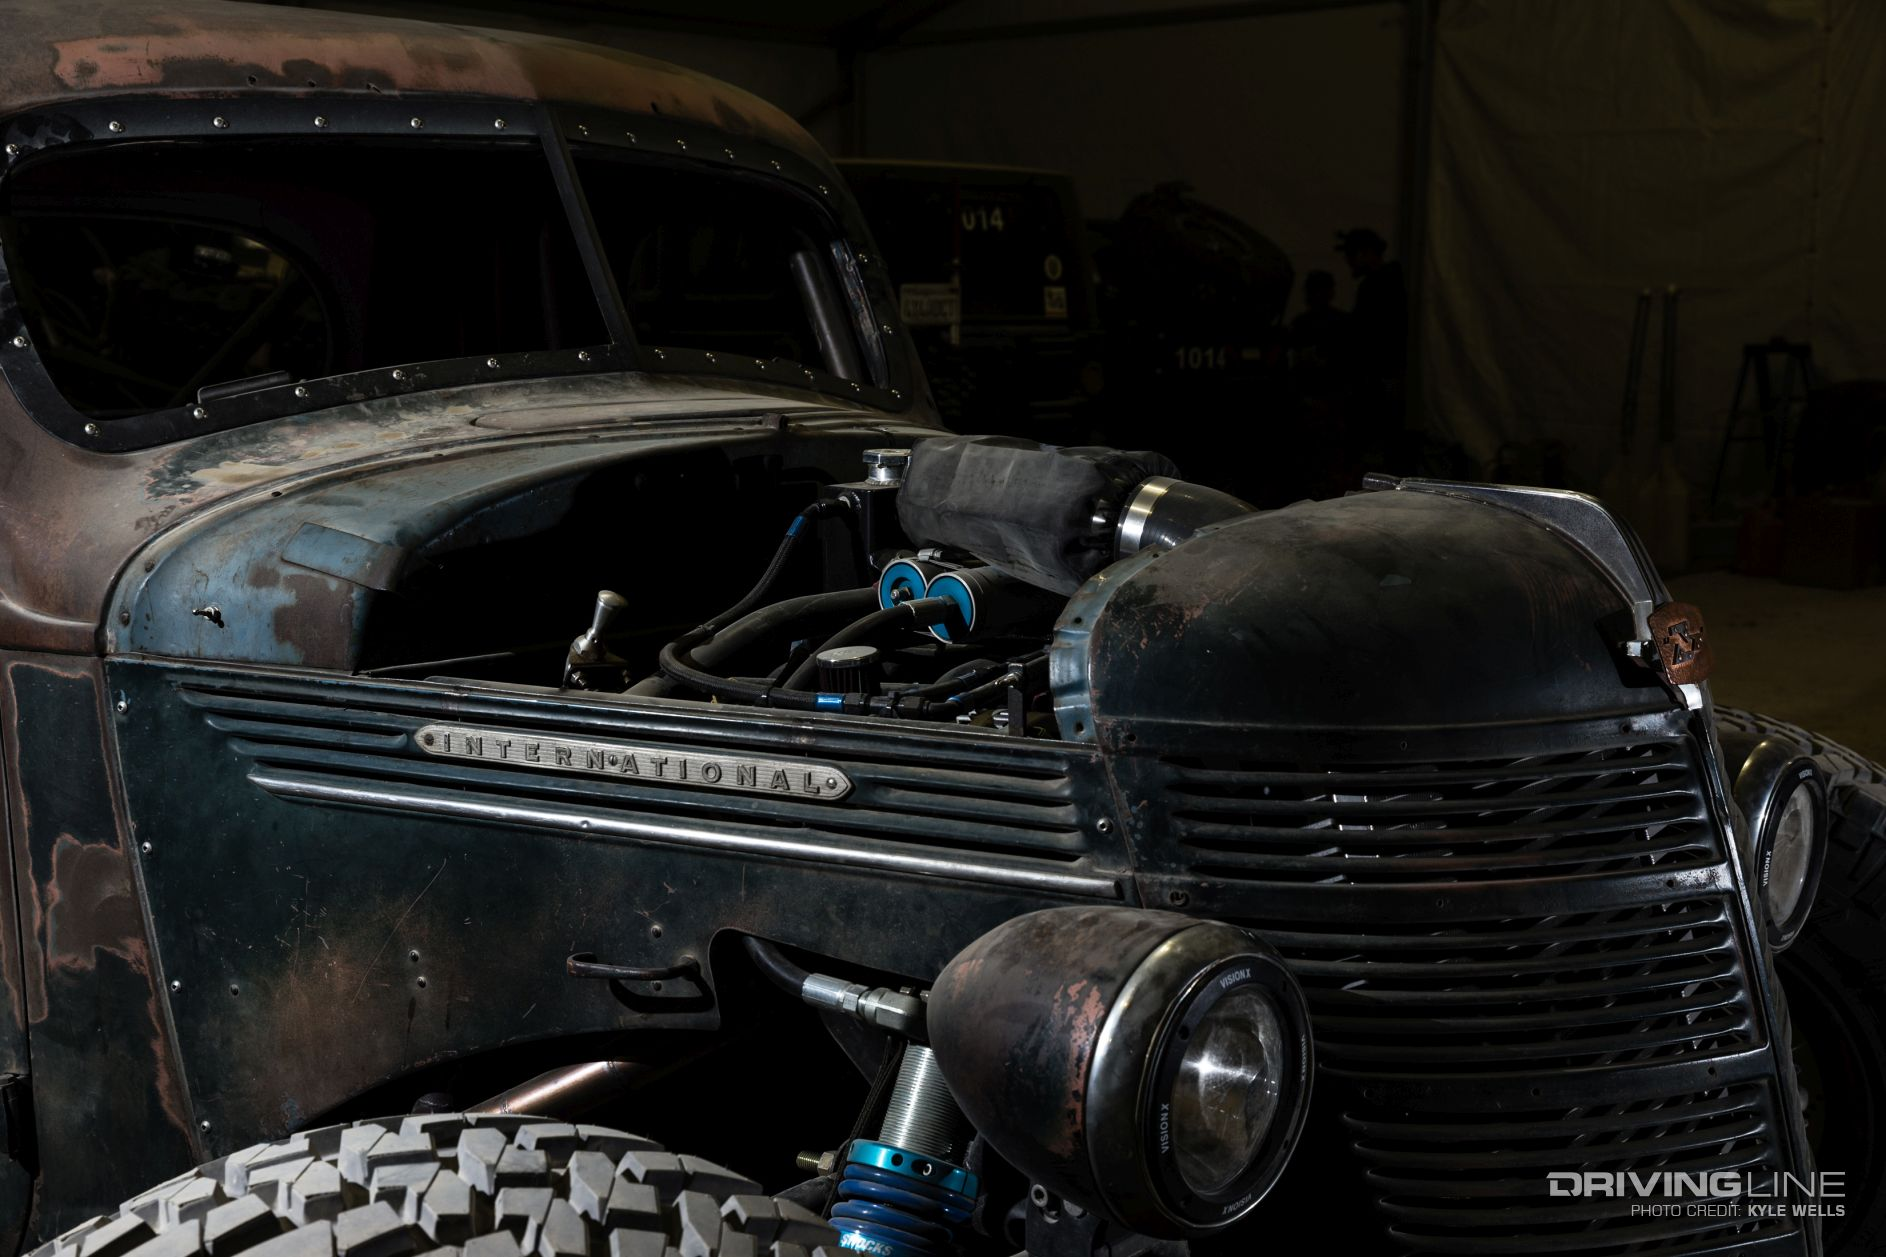 Trophy Rat A Hot Rod Pickup With Real Off Road Chops Drivingline International Wiring Harness Preview Image